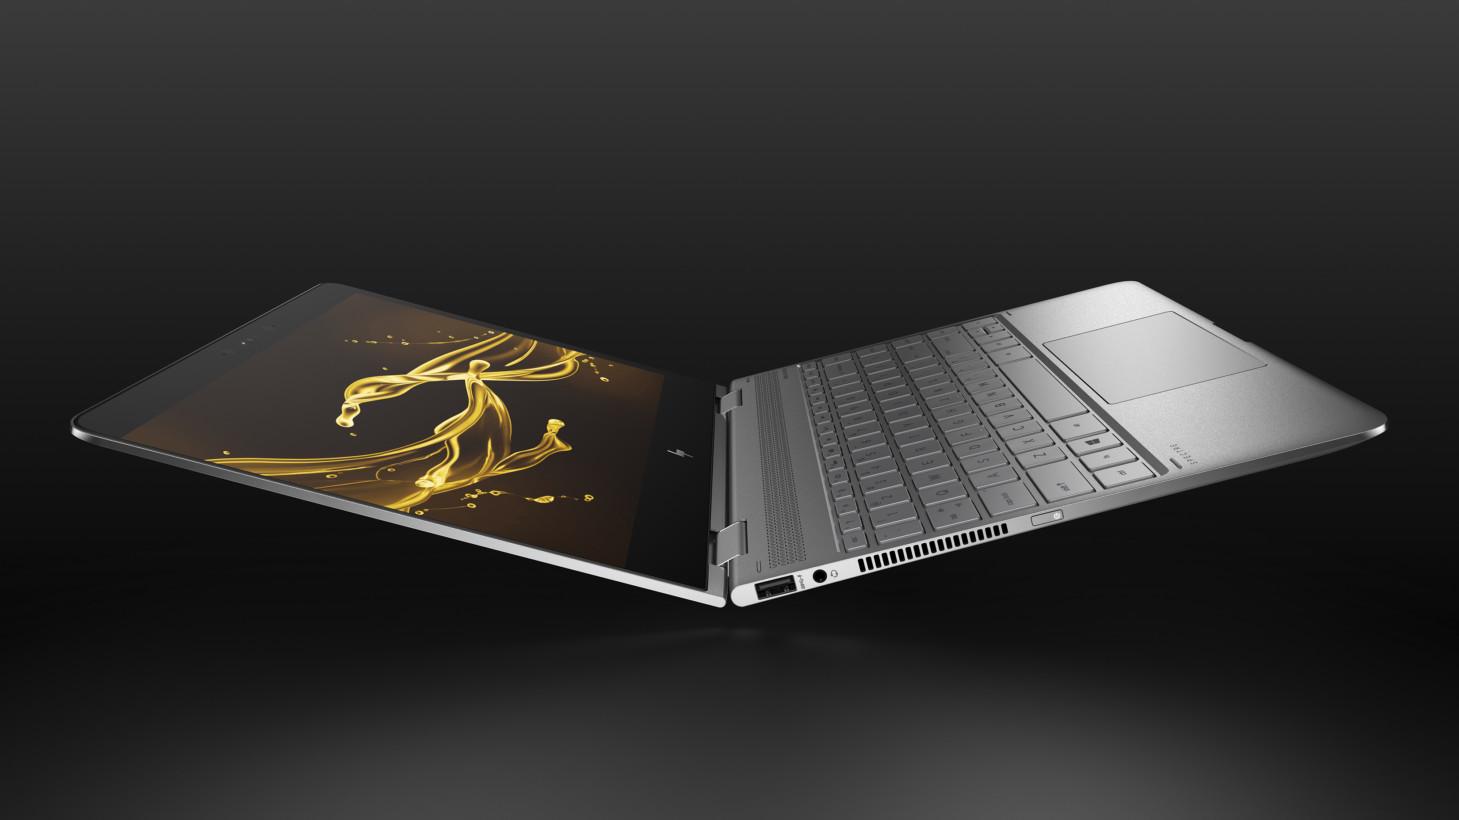 hp-spectre-x360-refreshed-600-04